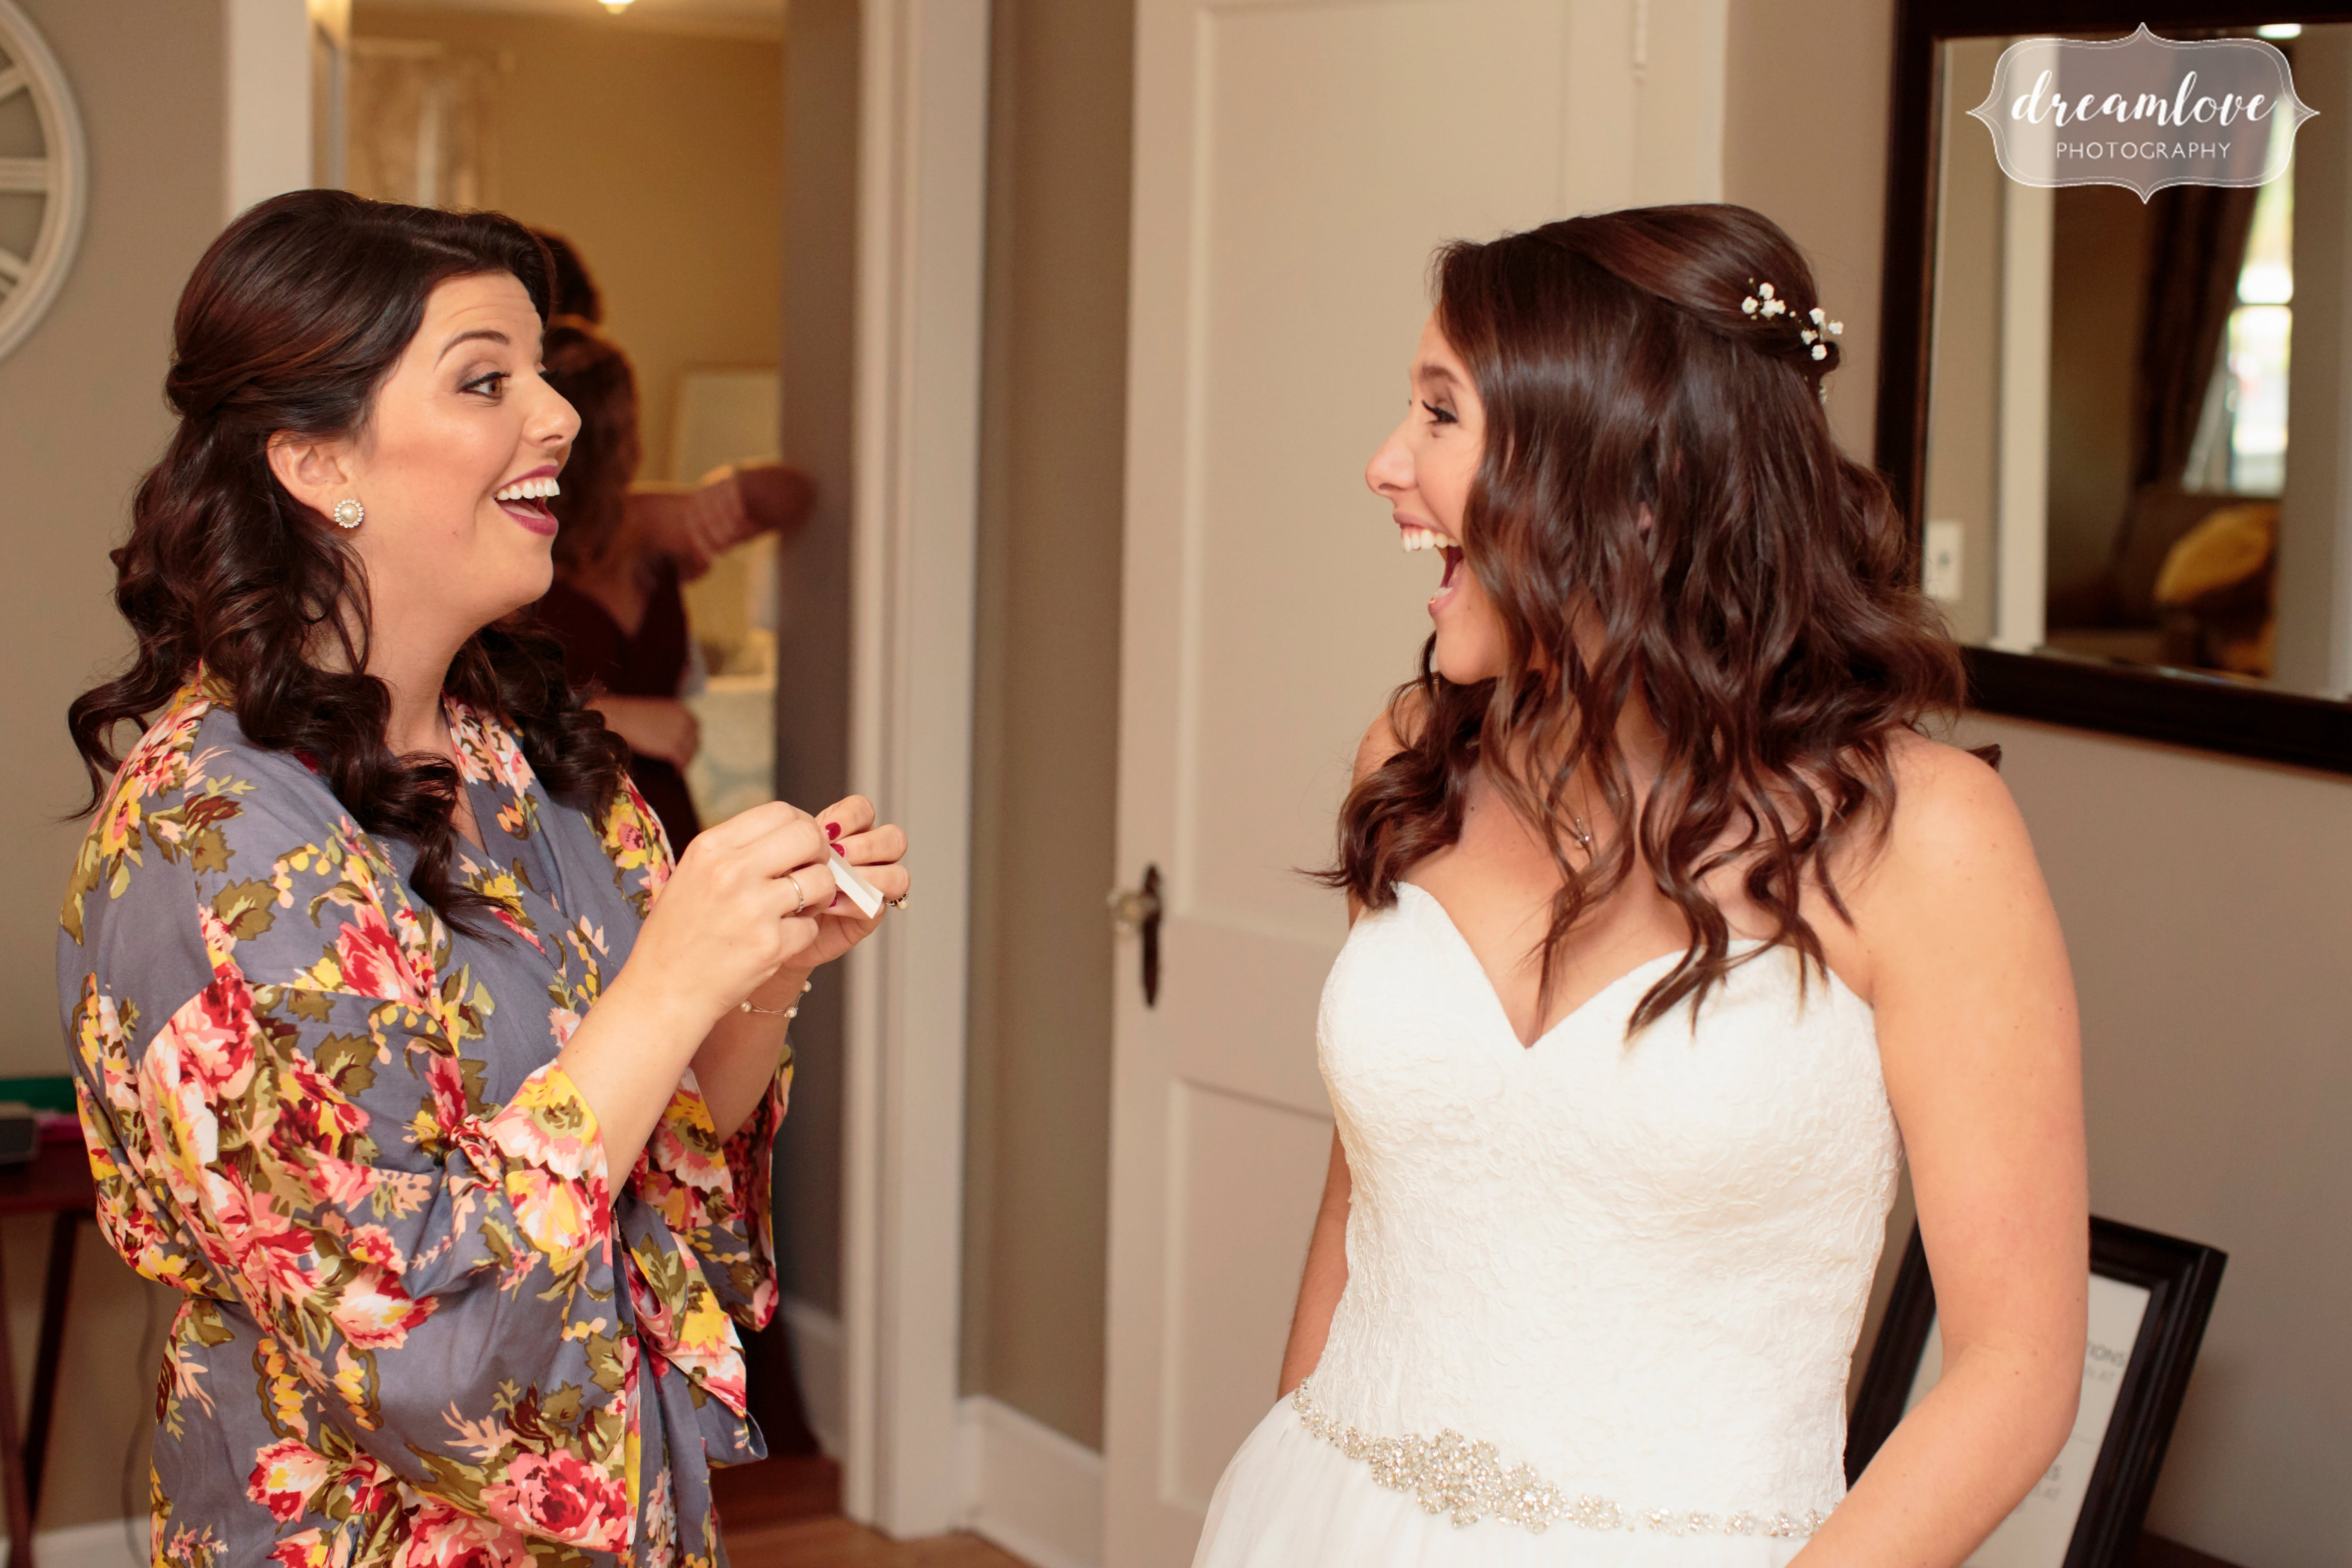 The bride gets ready for the wedding day at the Pavilion on Crystal Lake with bridesmaid in floral robe.